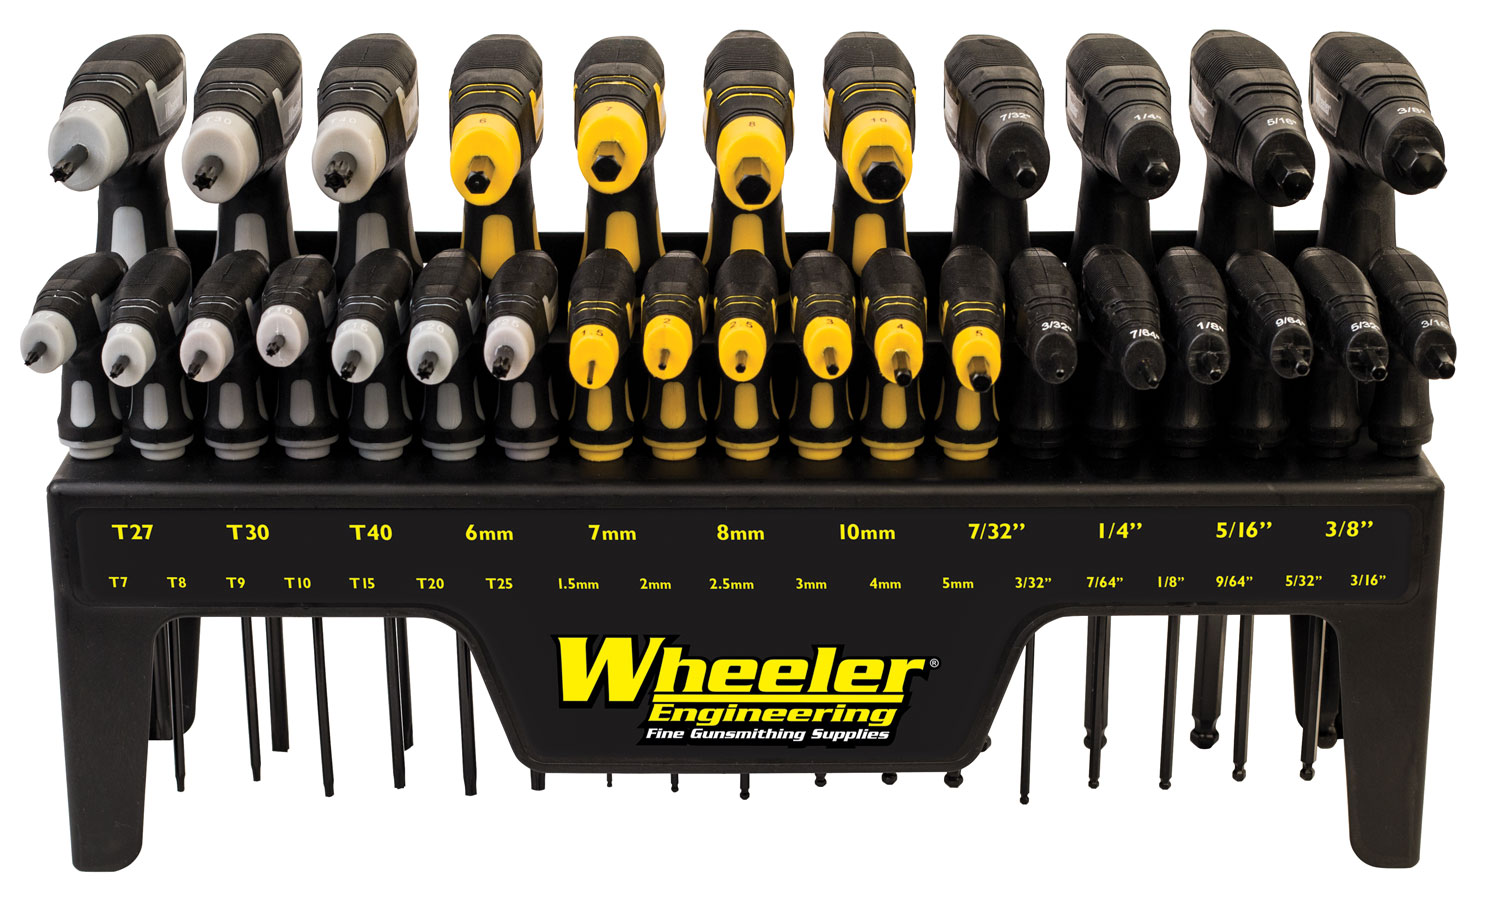 Wheeler 1081957 30 Pc Hex and Torx Set P-Handle Set 0 Pc Hex and Torx Set P-Handle Set